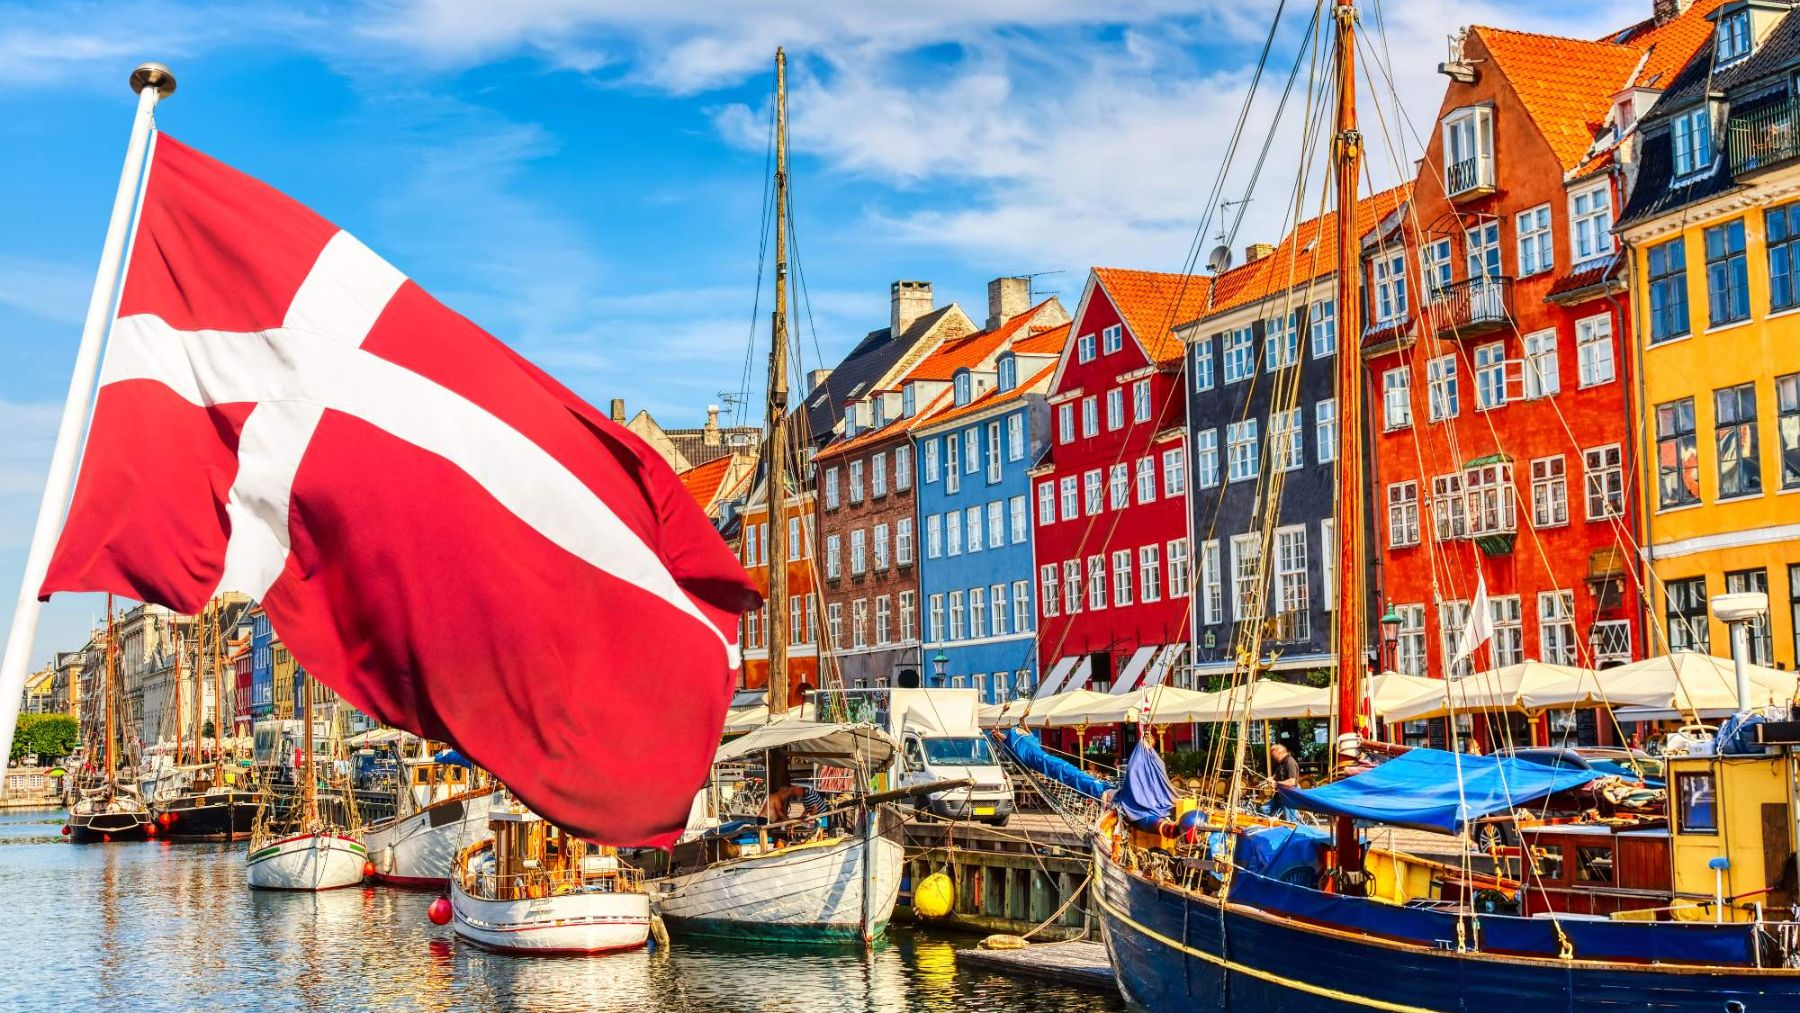 Ranking of the safest cities in the world